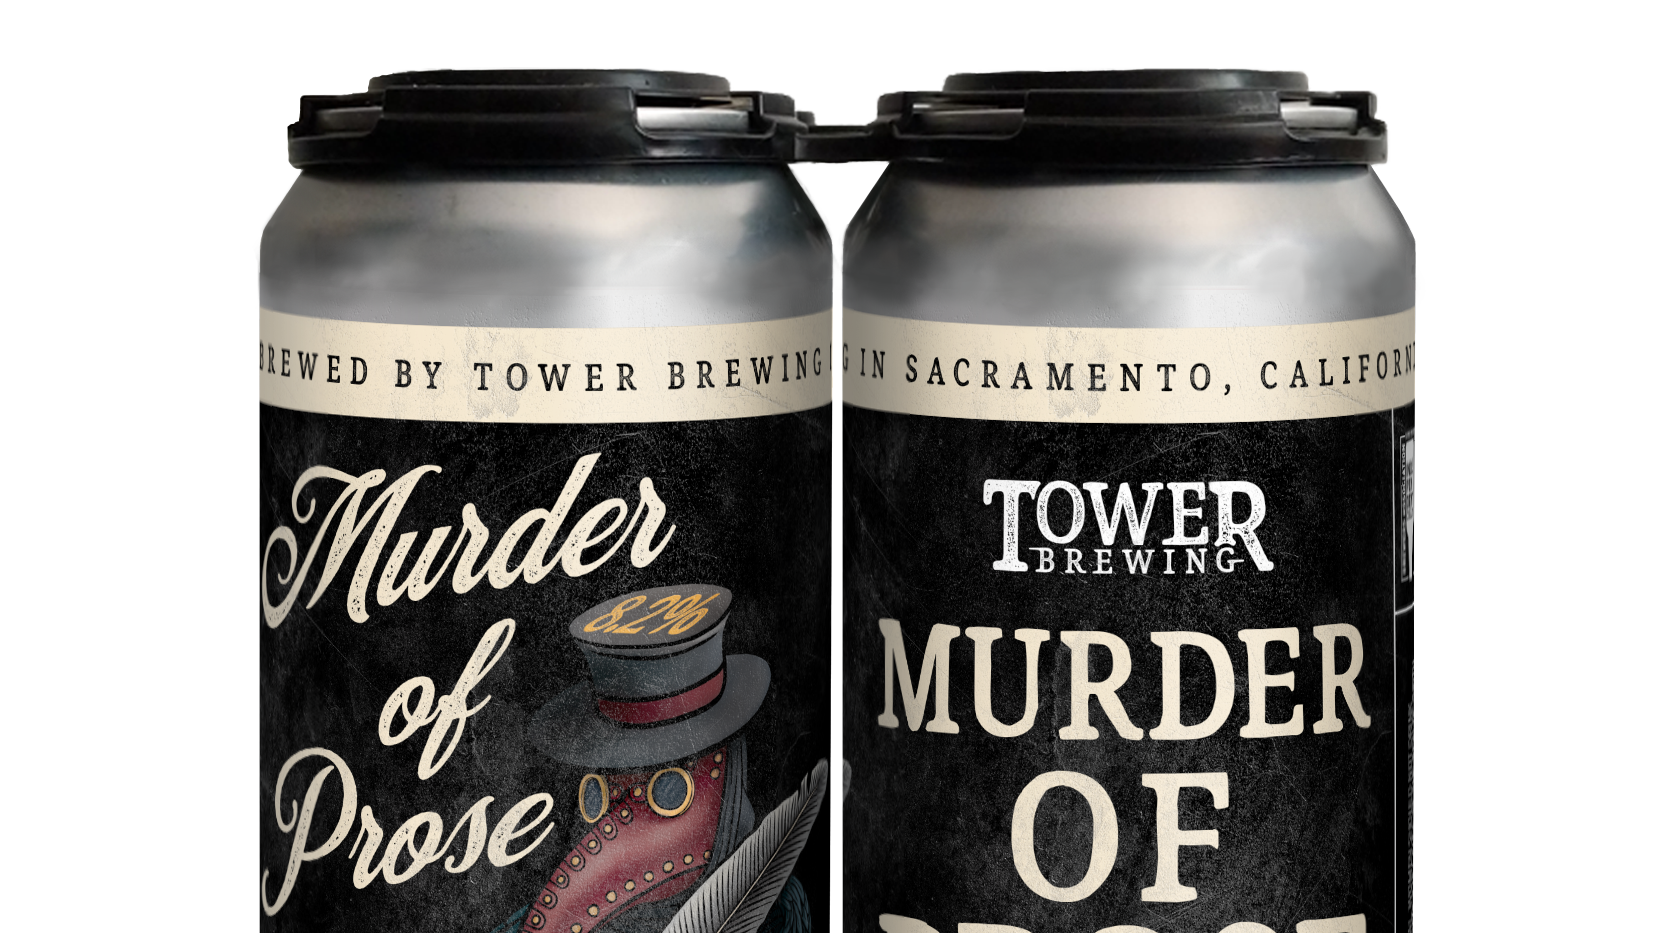 Murder of Crows cans - Tower Brewing